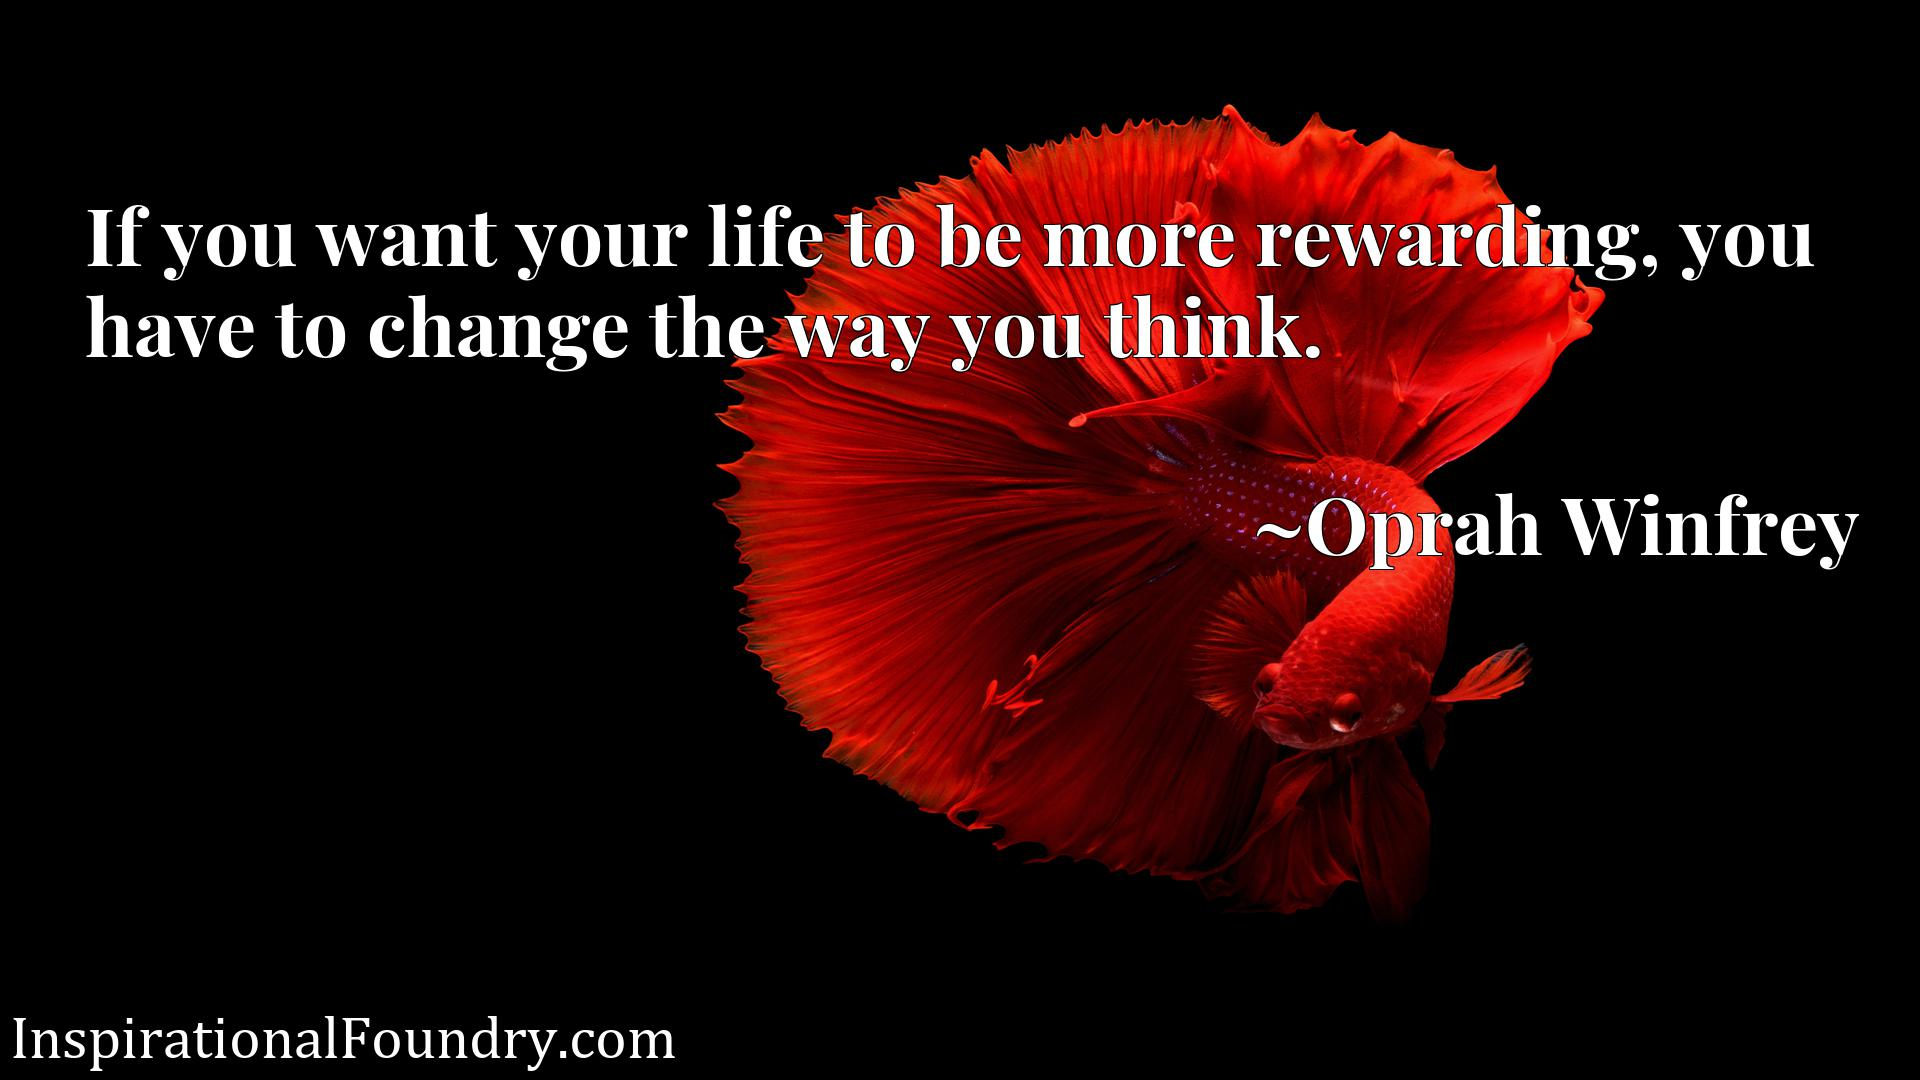 If you want your life to be more rewarding, you have to change the way you think.